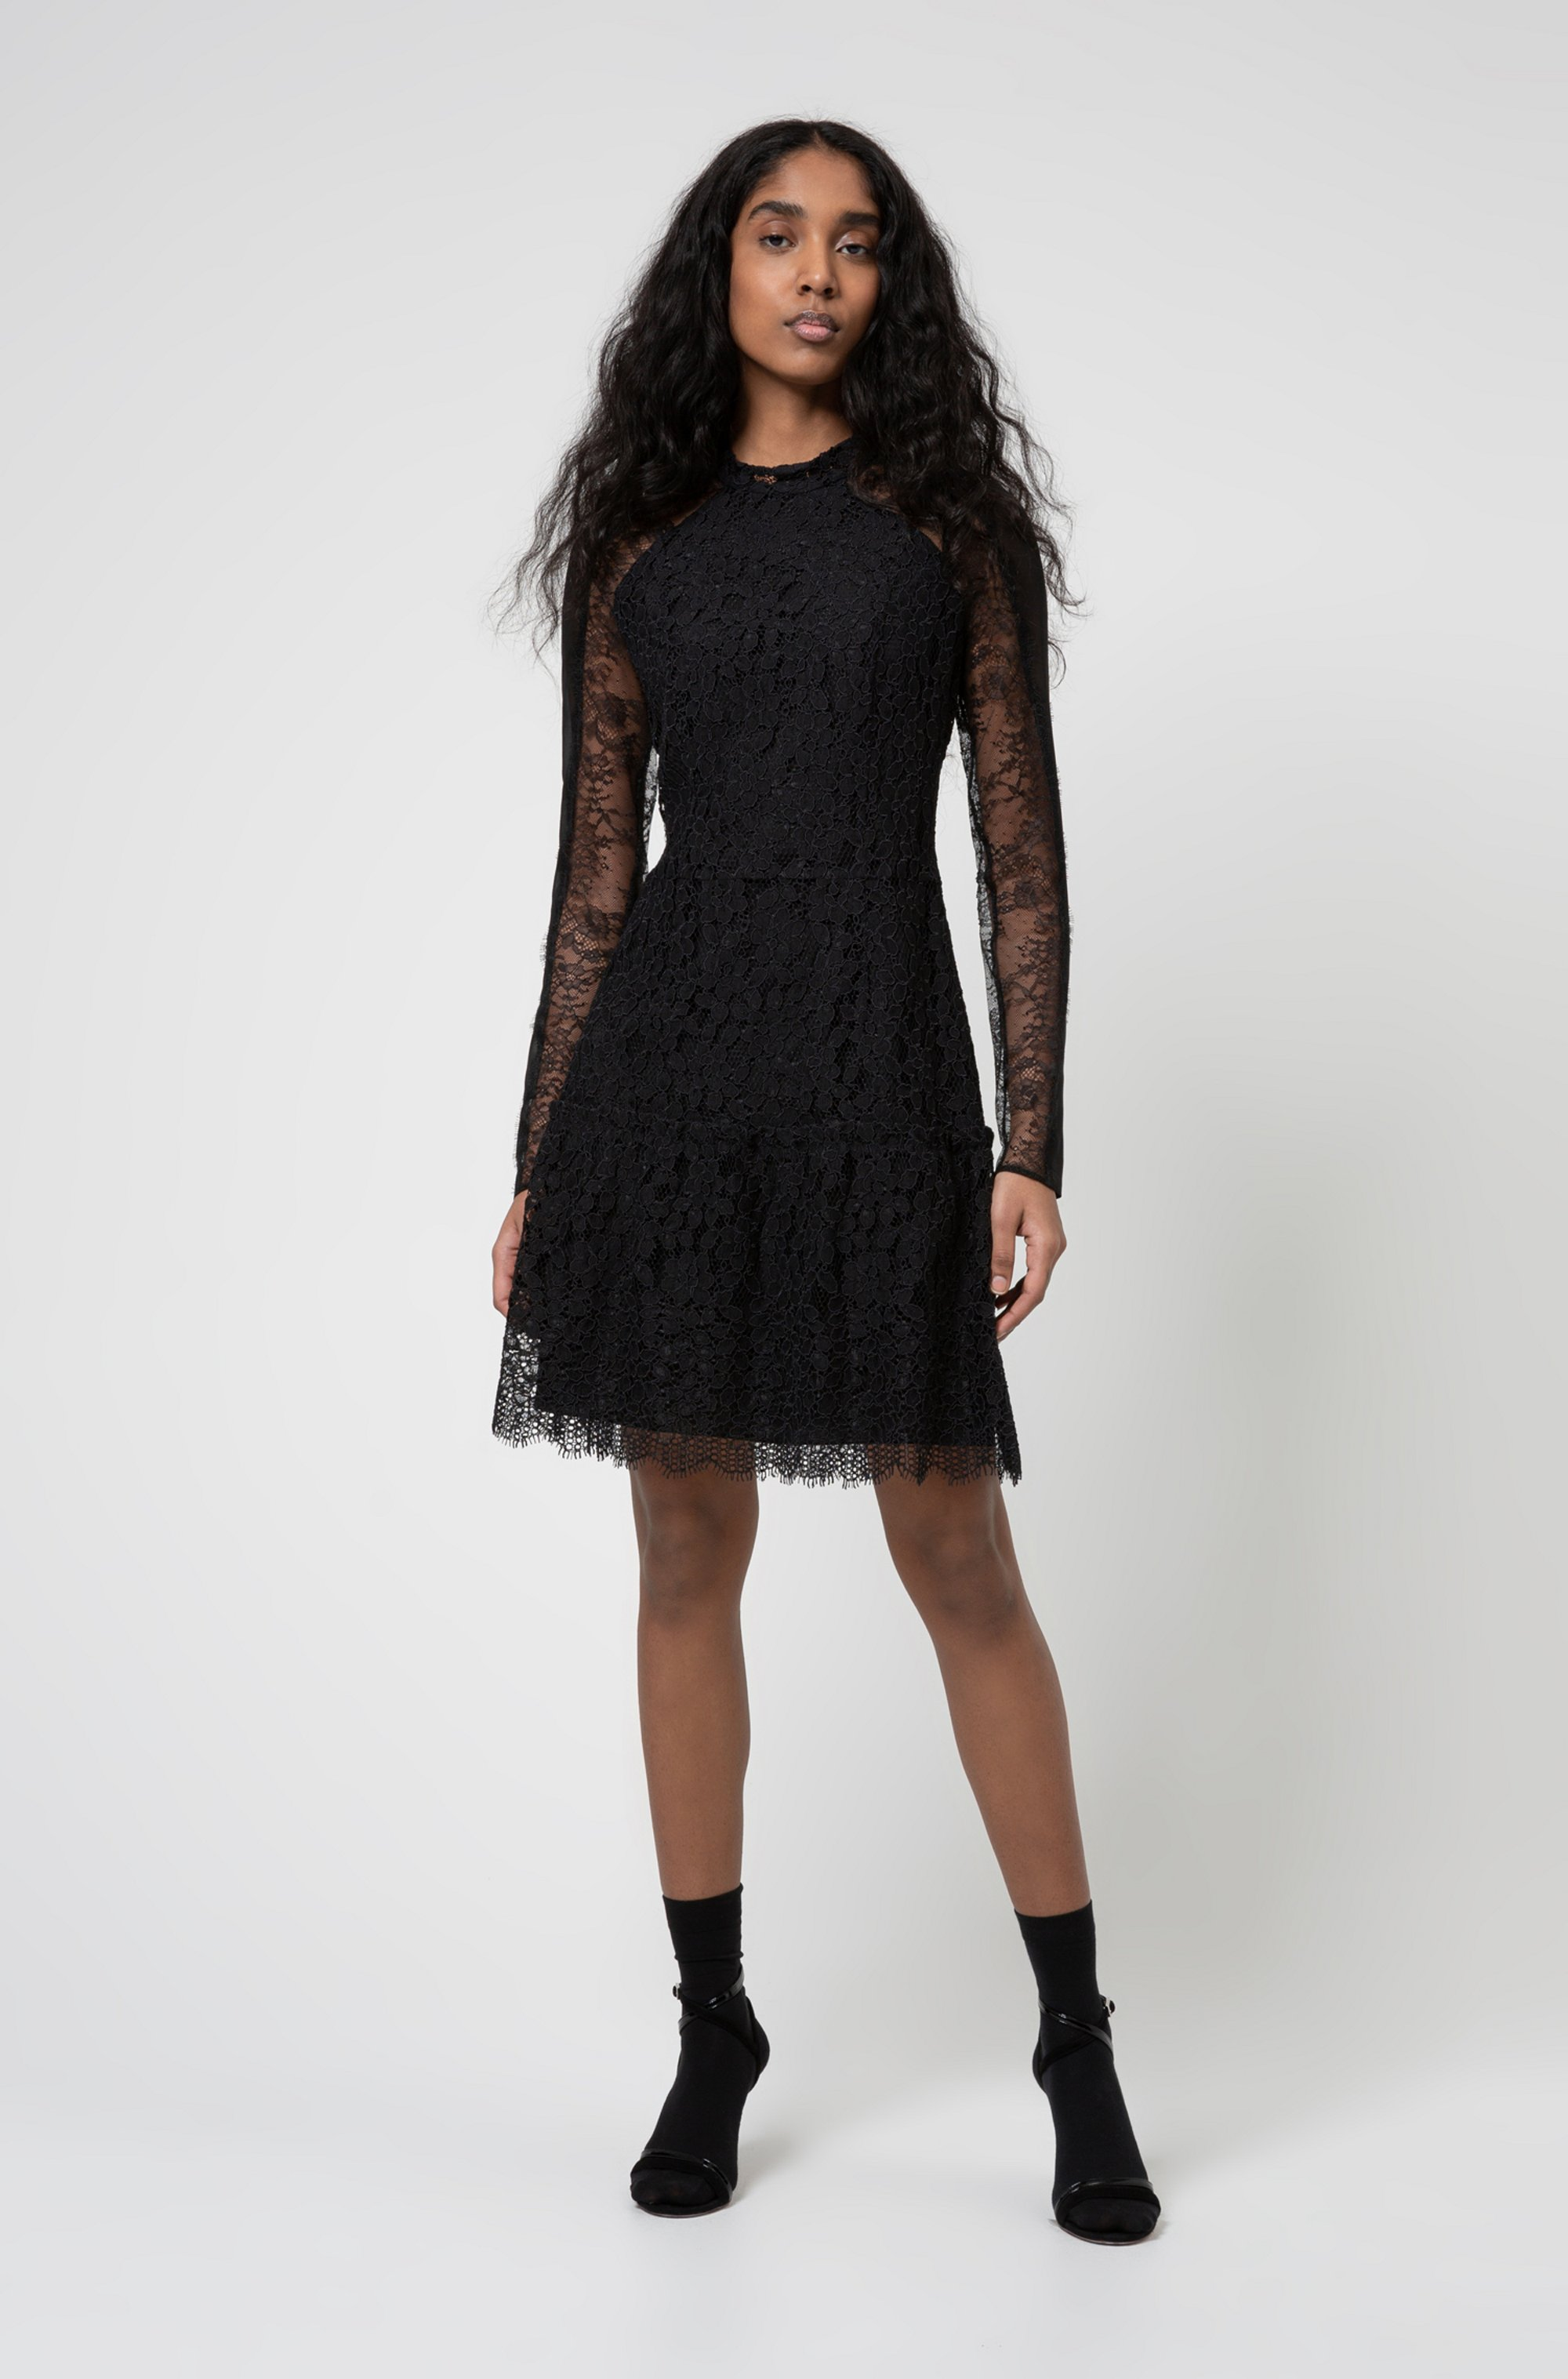 High-neck dress in floral lace